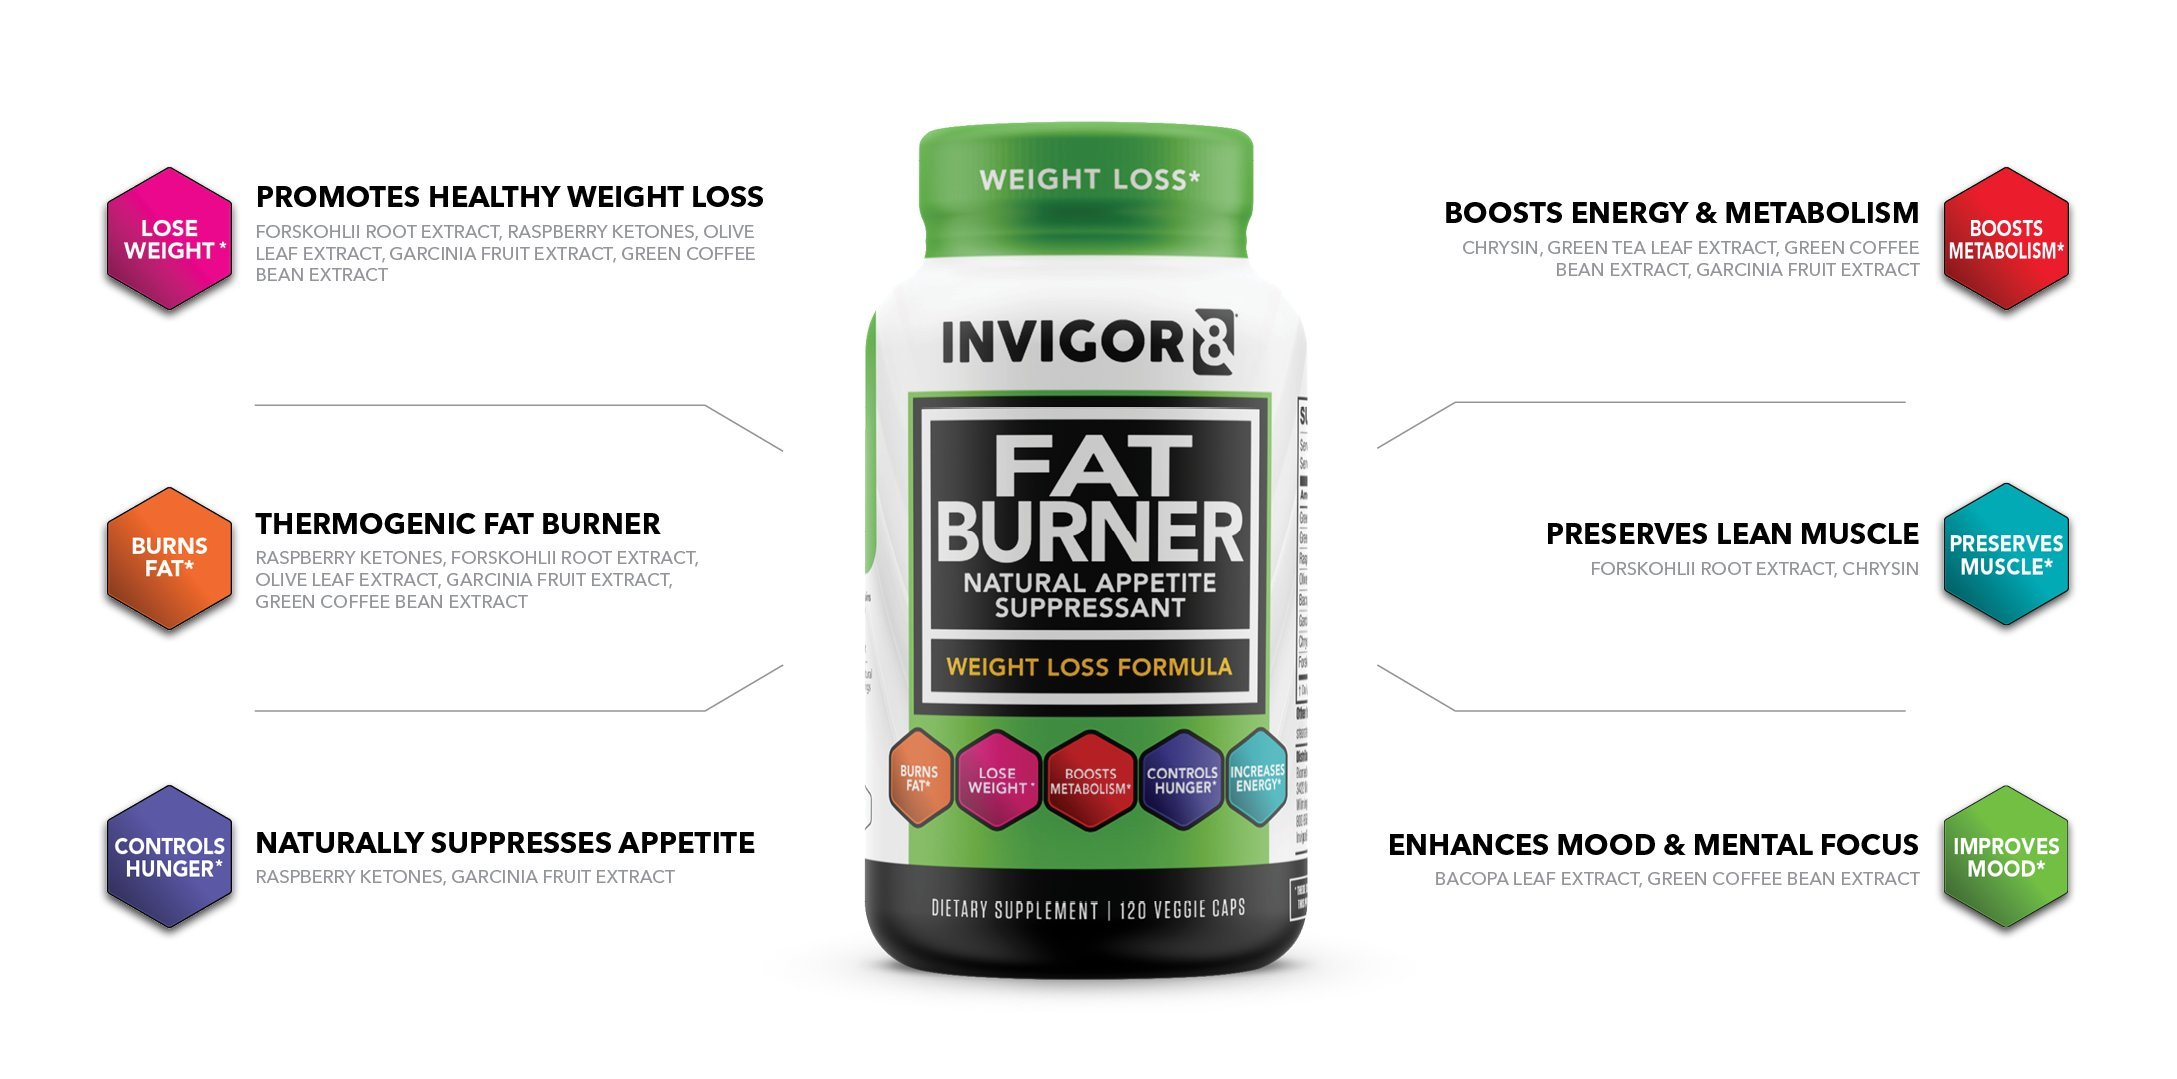 INVIGOR8 Fat Burner and Natural Appetite Suppressant – Healthy Weight Loss Formula and Thermogenic with Green Tea Leaf Extract (3-Pack 90 Day Supply)… by BRL Sports Nutrition (Image #2)